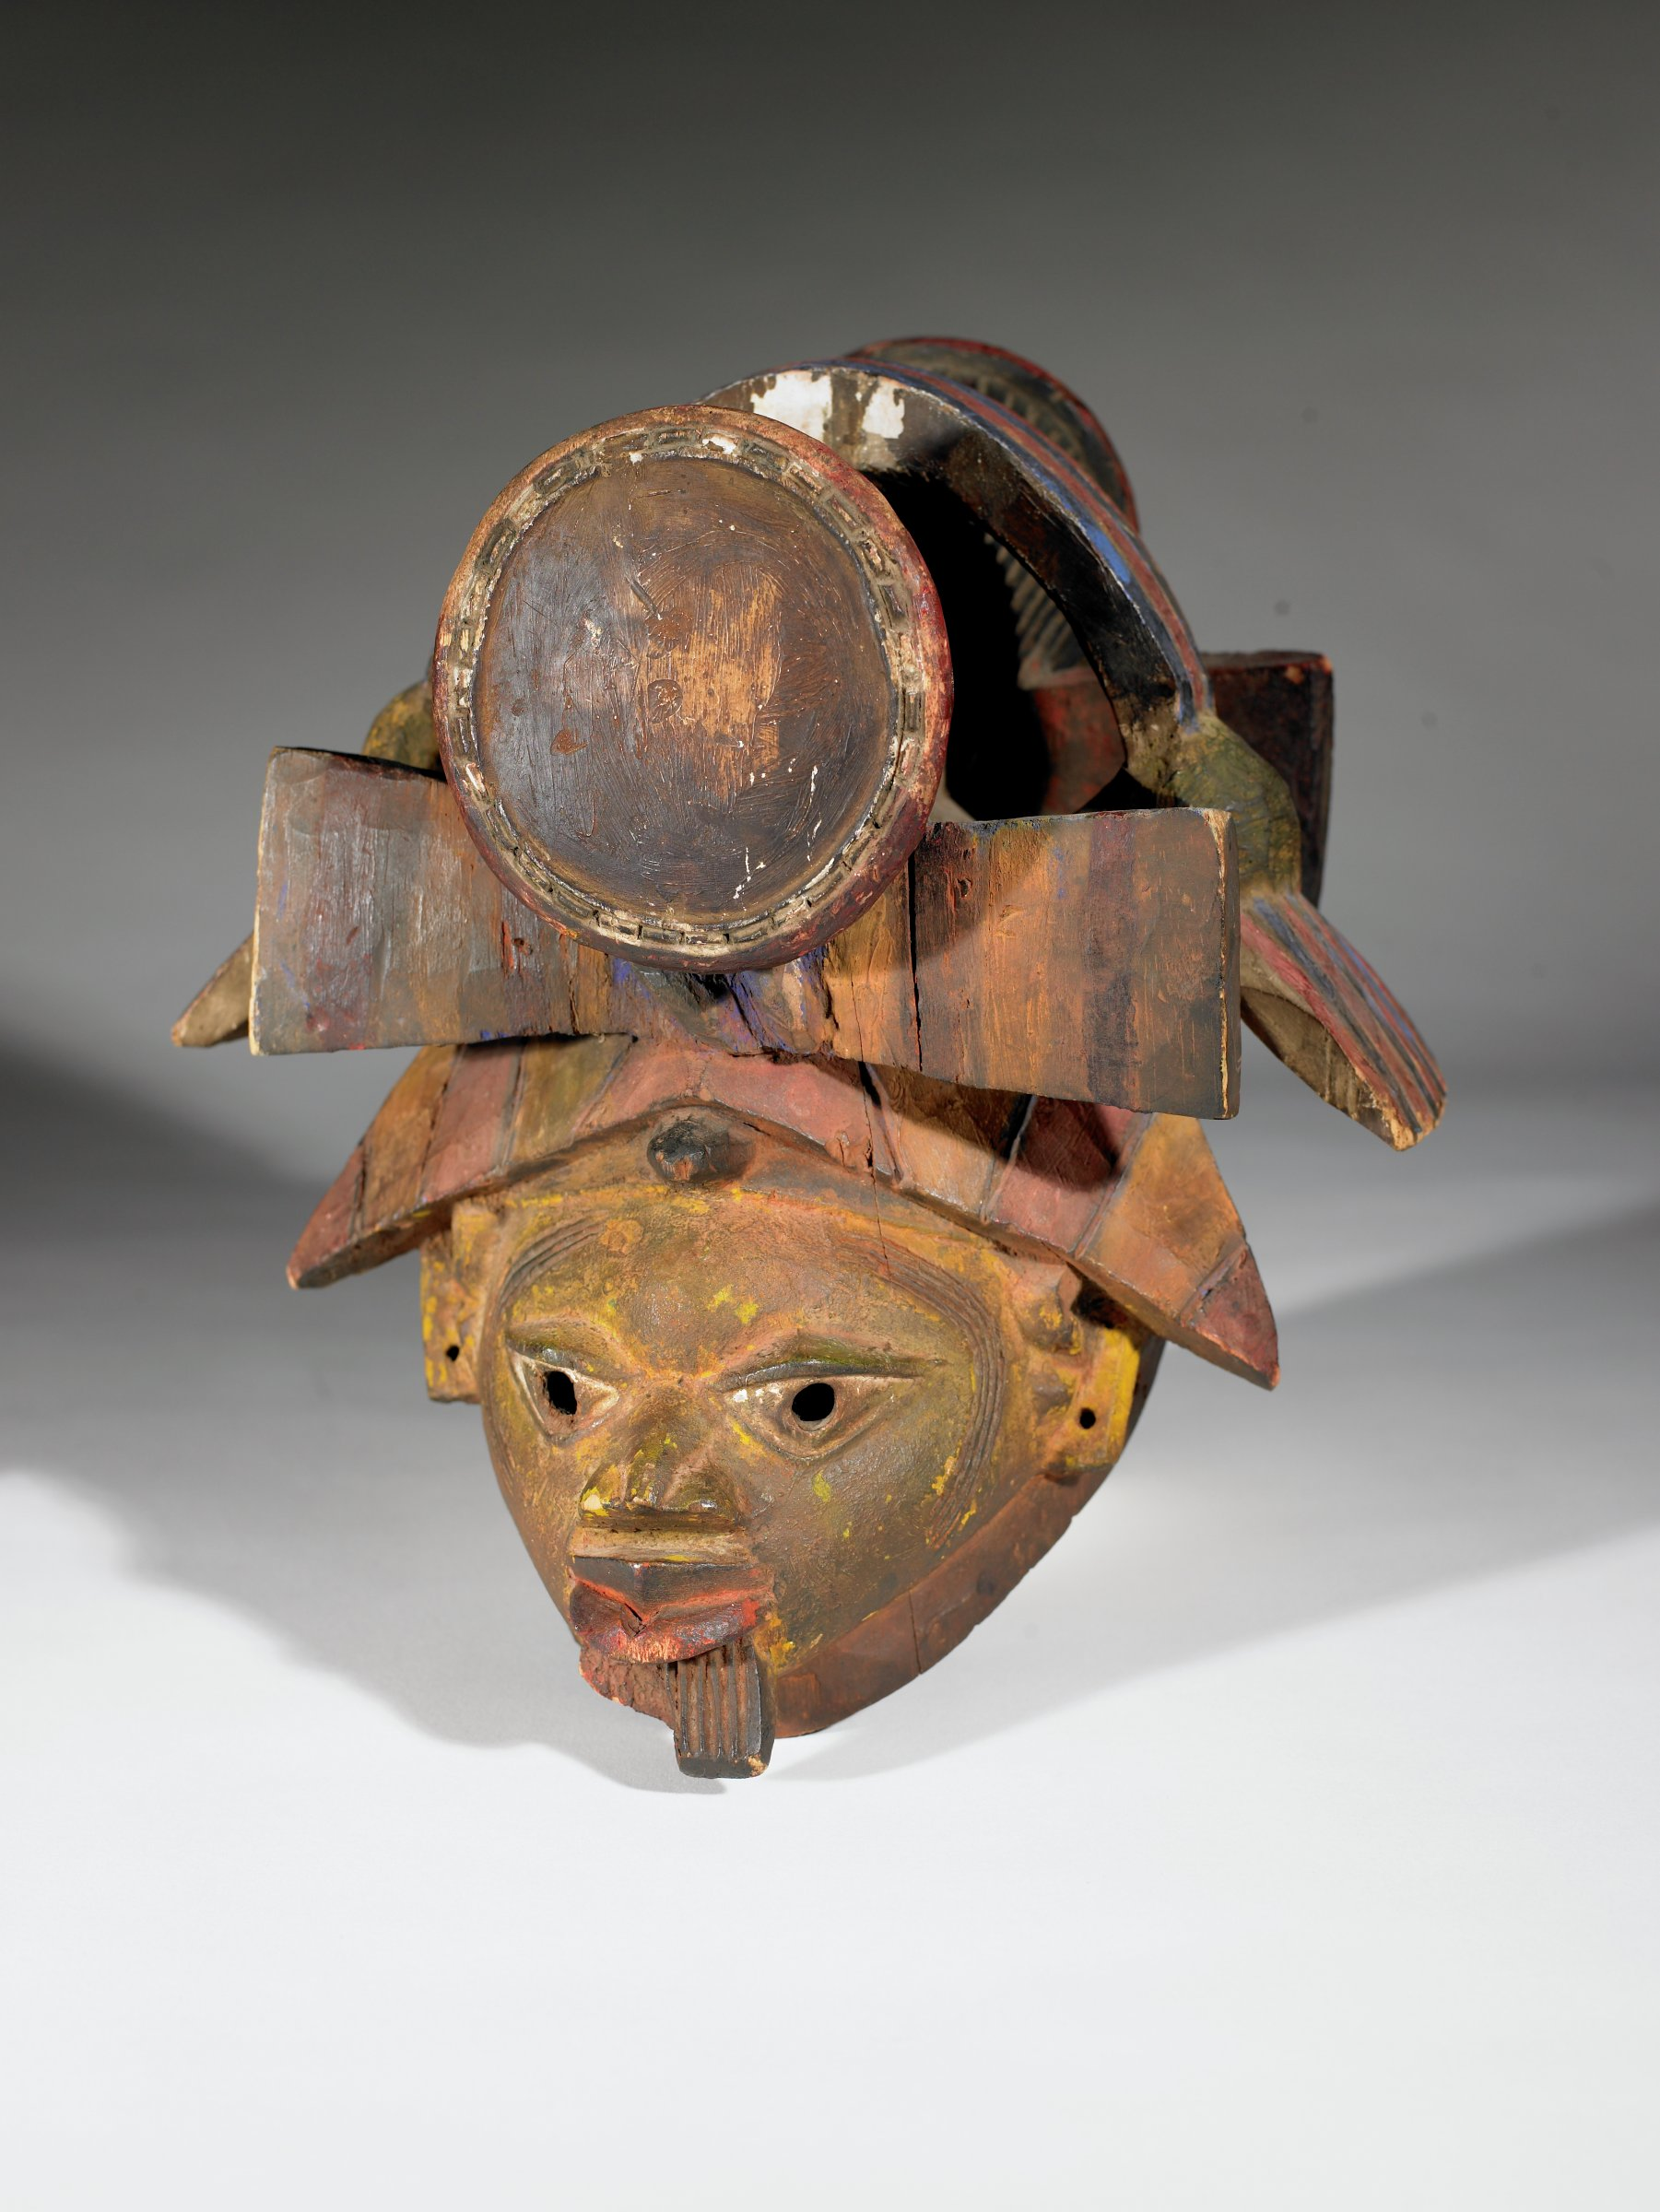 Mask/headdress composed of male face with beard and pierced eyes, topped by head-ware which includes sculpted drum resting on framework, held in place by sculpted fabric tie.